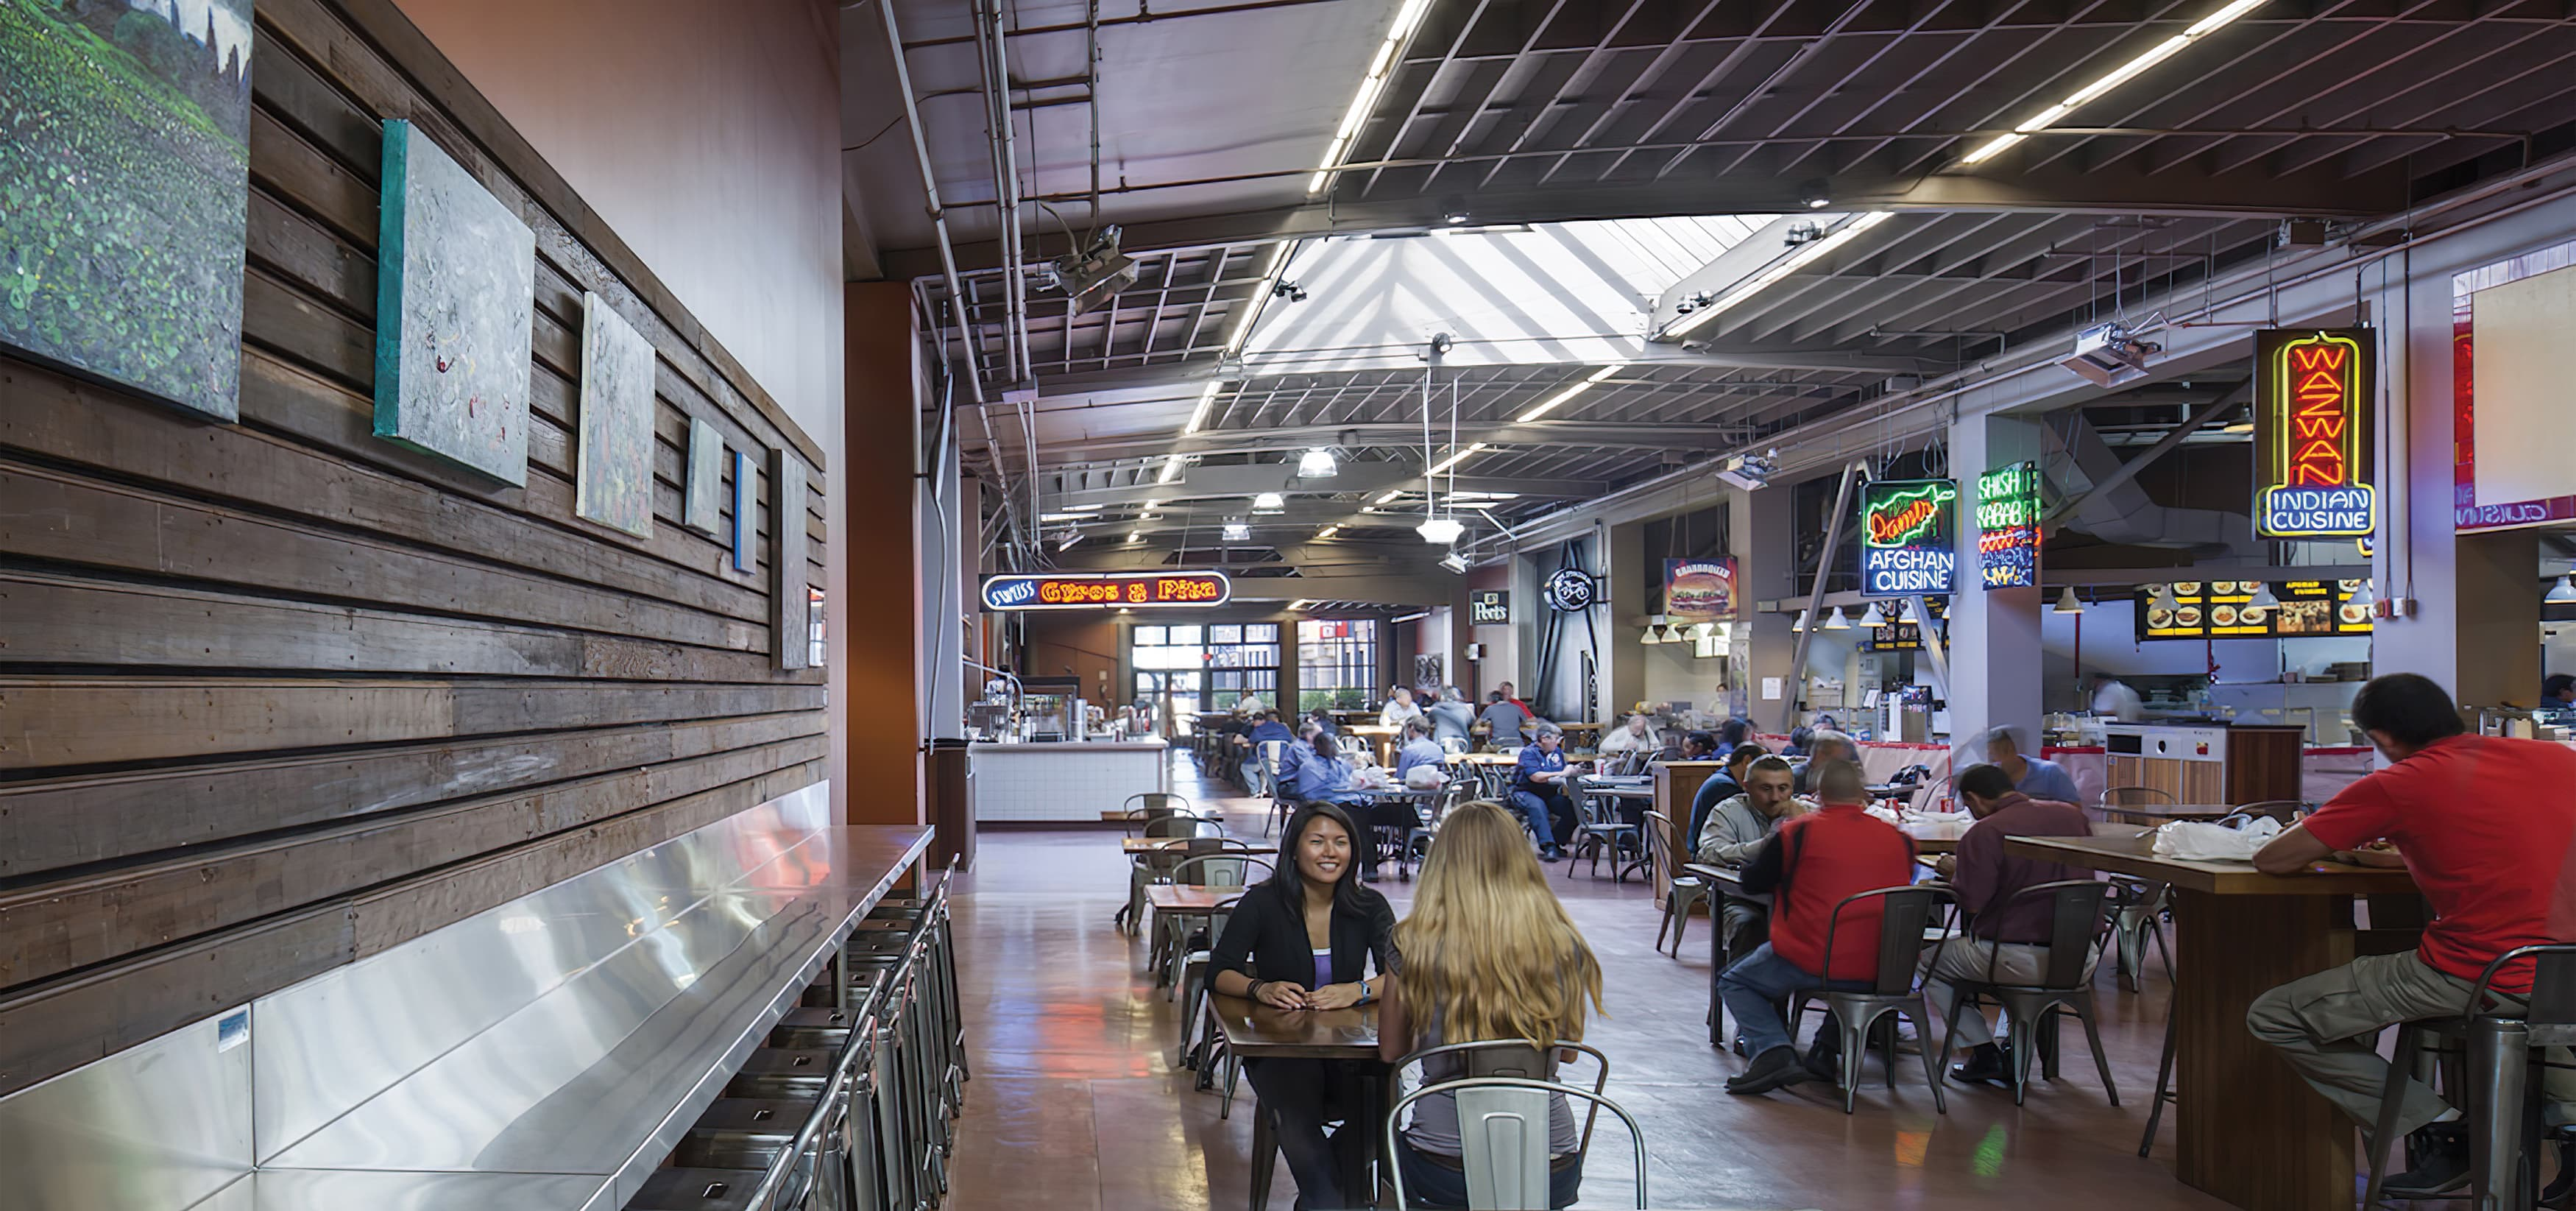 RSM Design worked with TMG Partners to develop signage and wayfinding program for Public Market, a dining and shopping center in San Francisco, California. Food Hall Design.